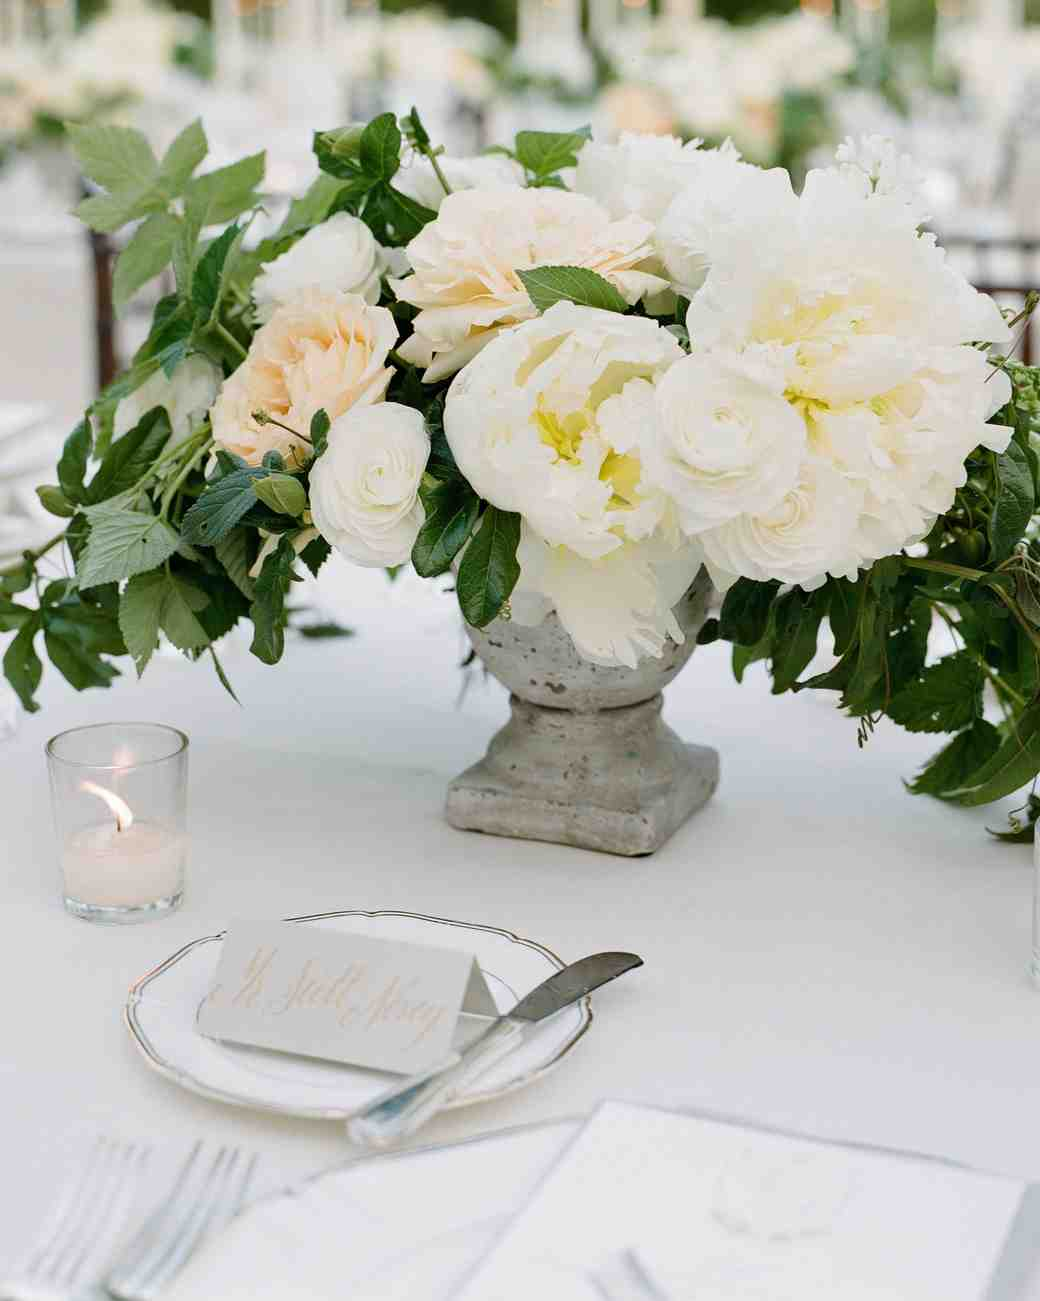 The Prettiest Peony Wedding Centerpieces | Martha Stewart Weddings